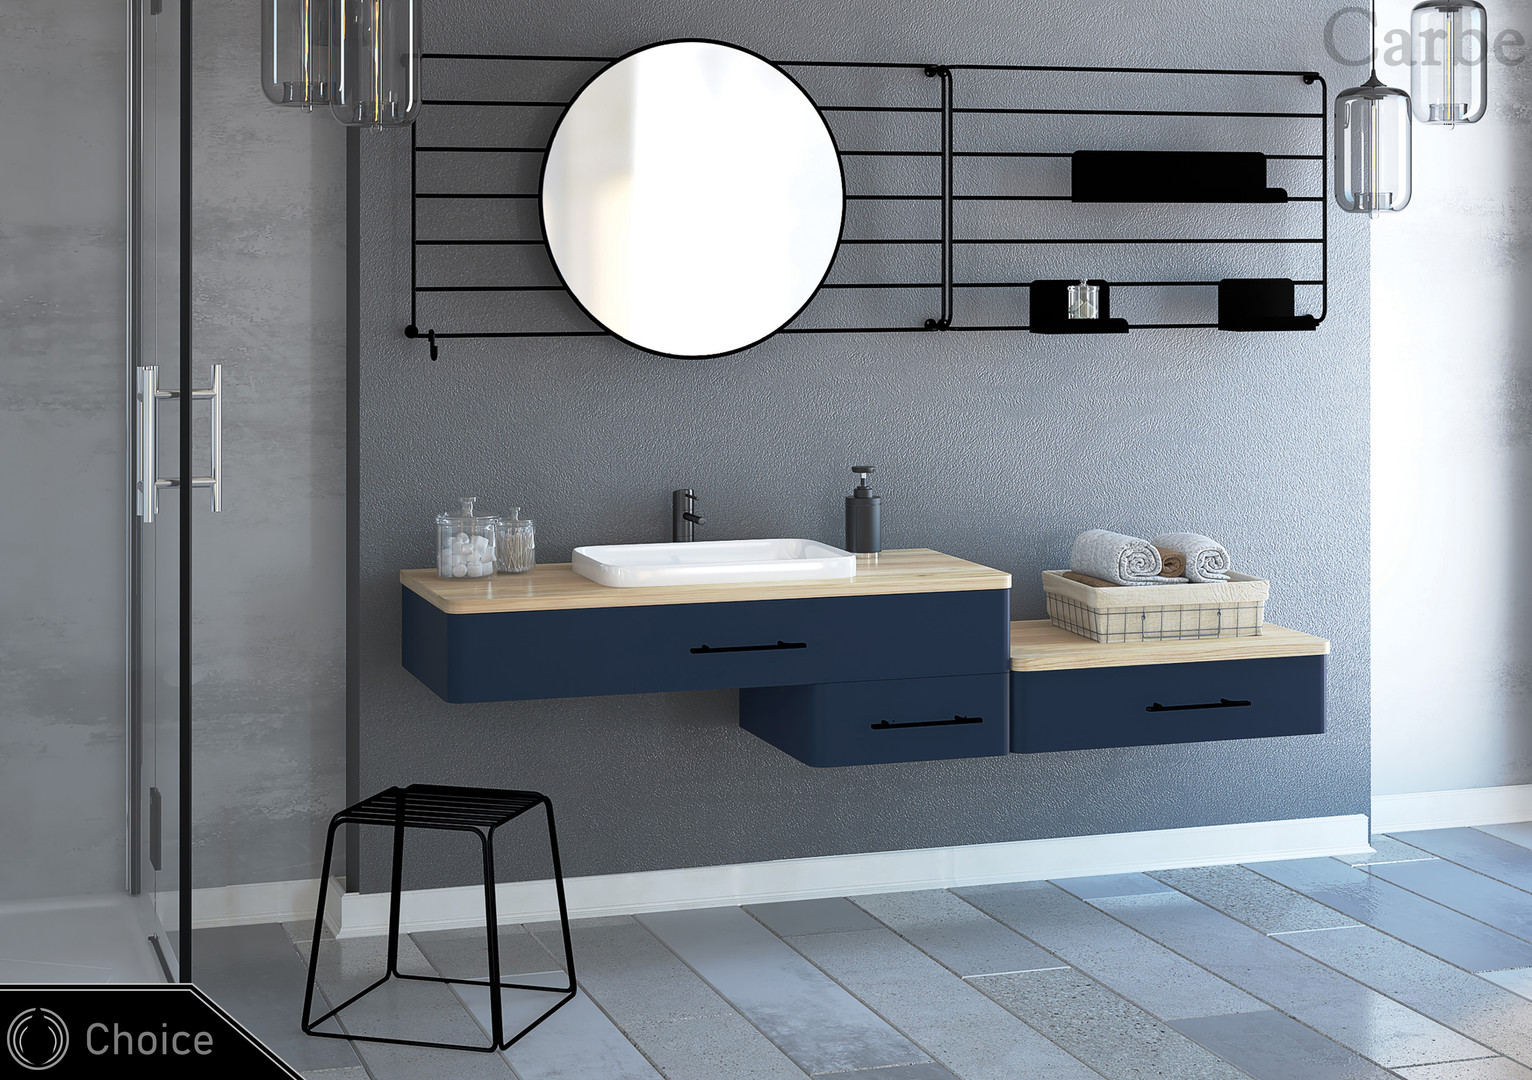 Choice - Wave Blue, Natural Ash Wood, Dolmite Washbasin, Soft Closing